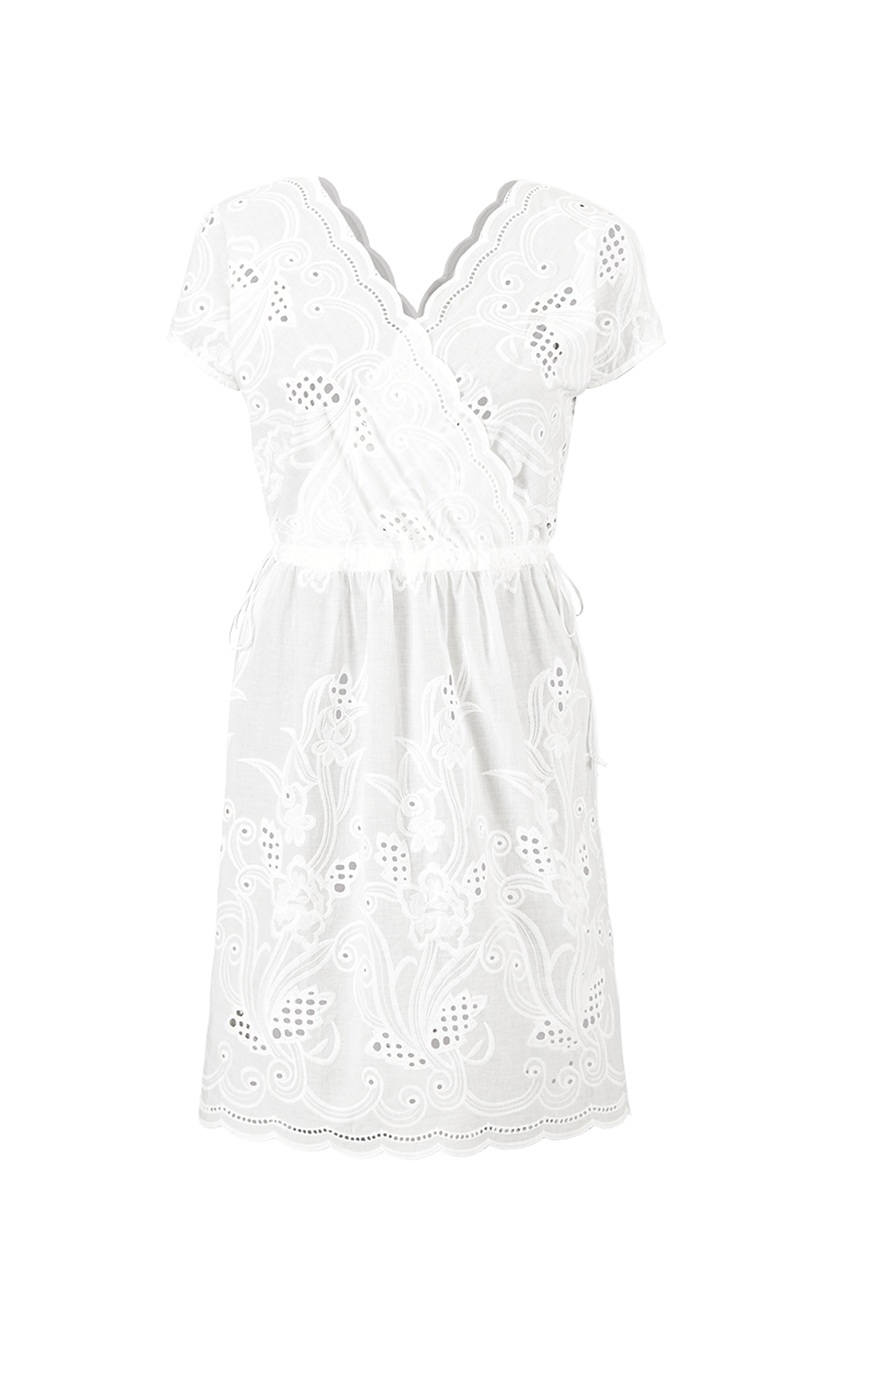 cabi's Eyelet Cover-Up